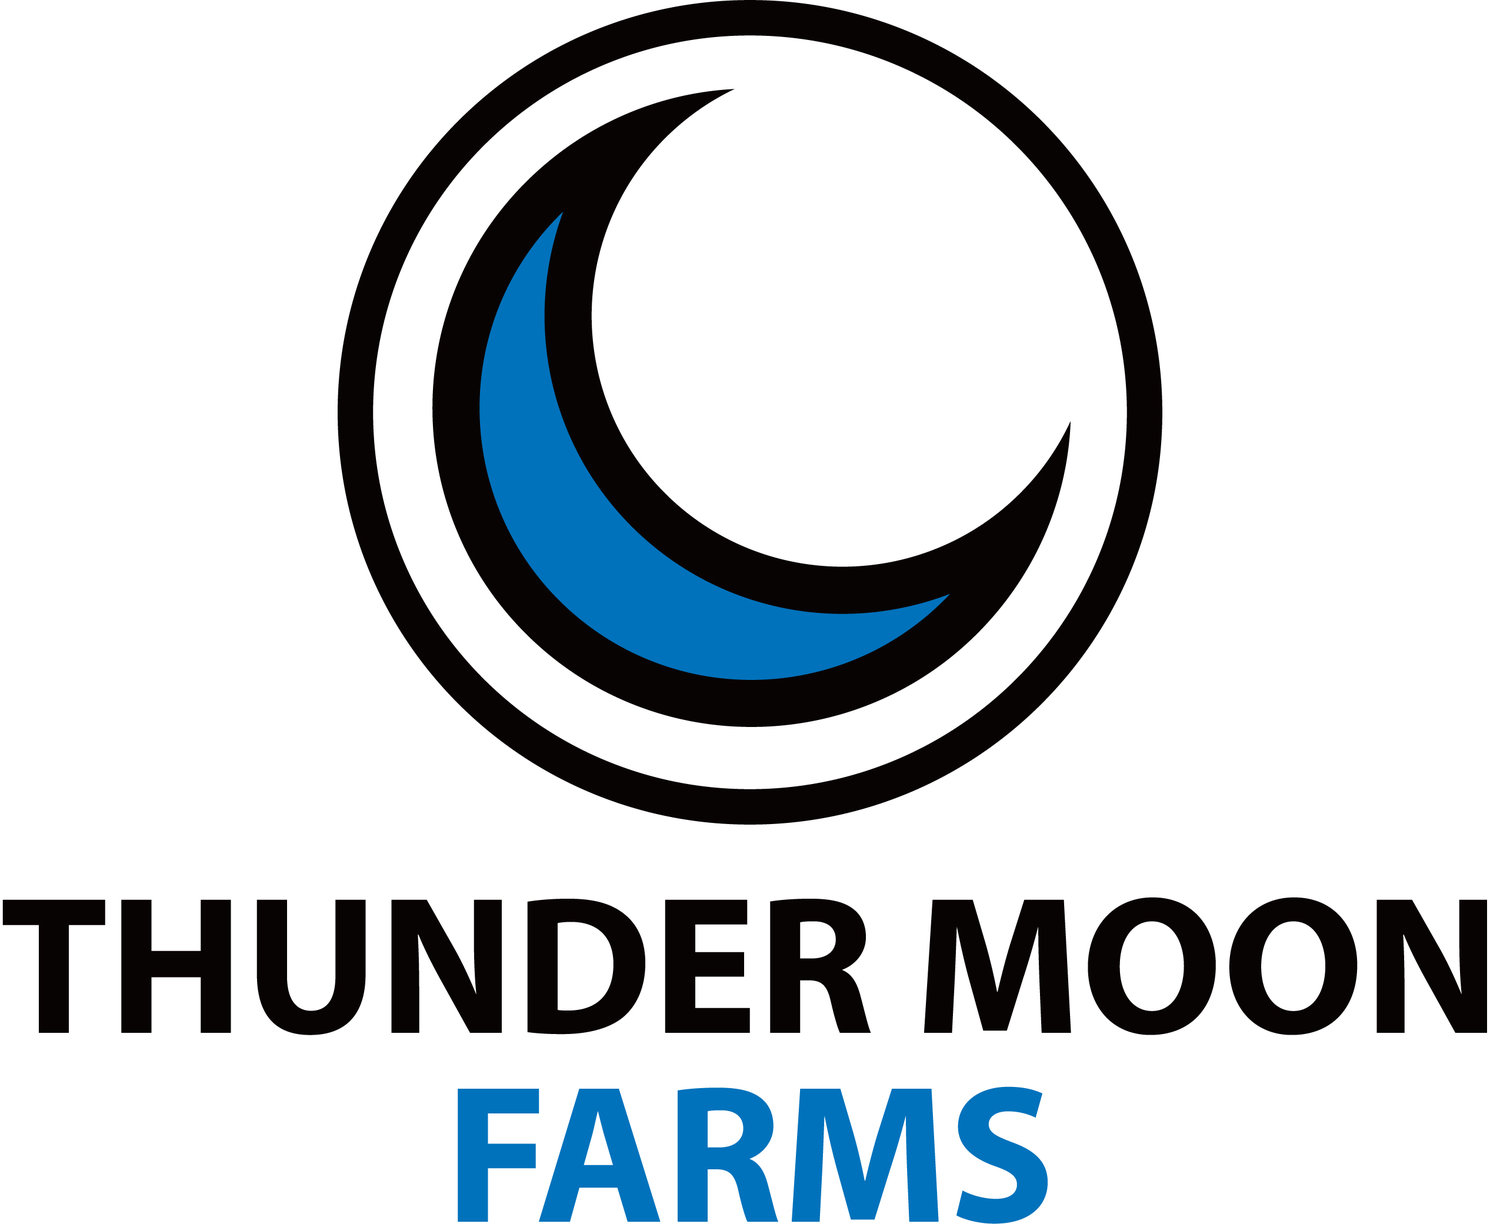 Thunder Moon Farms